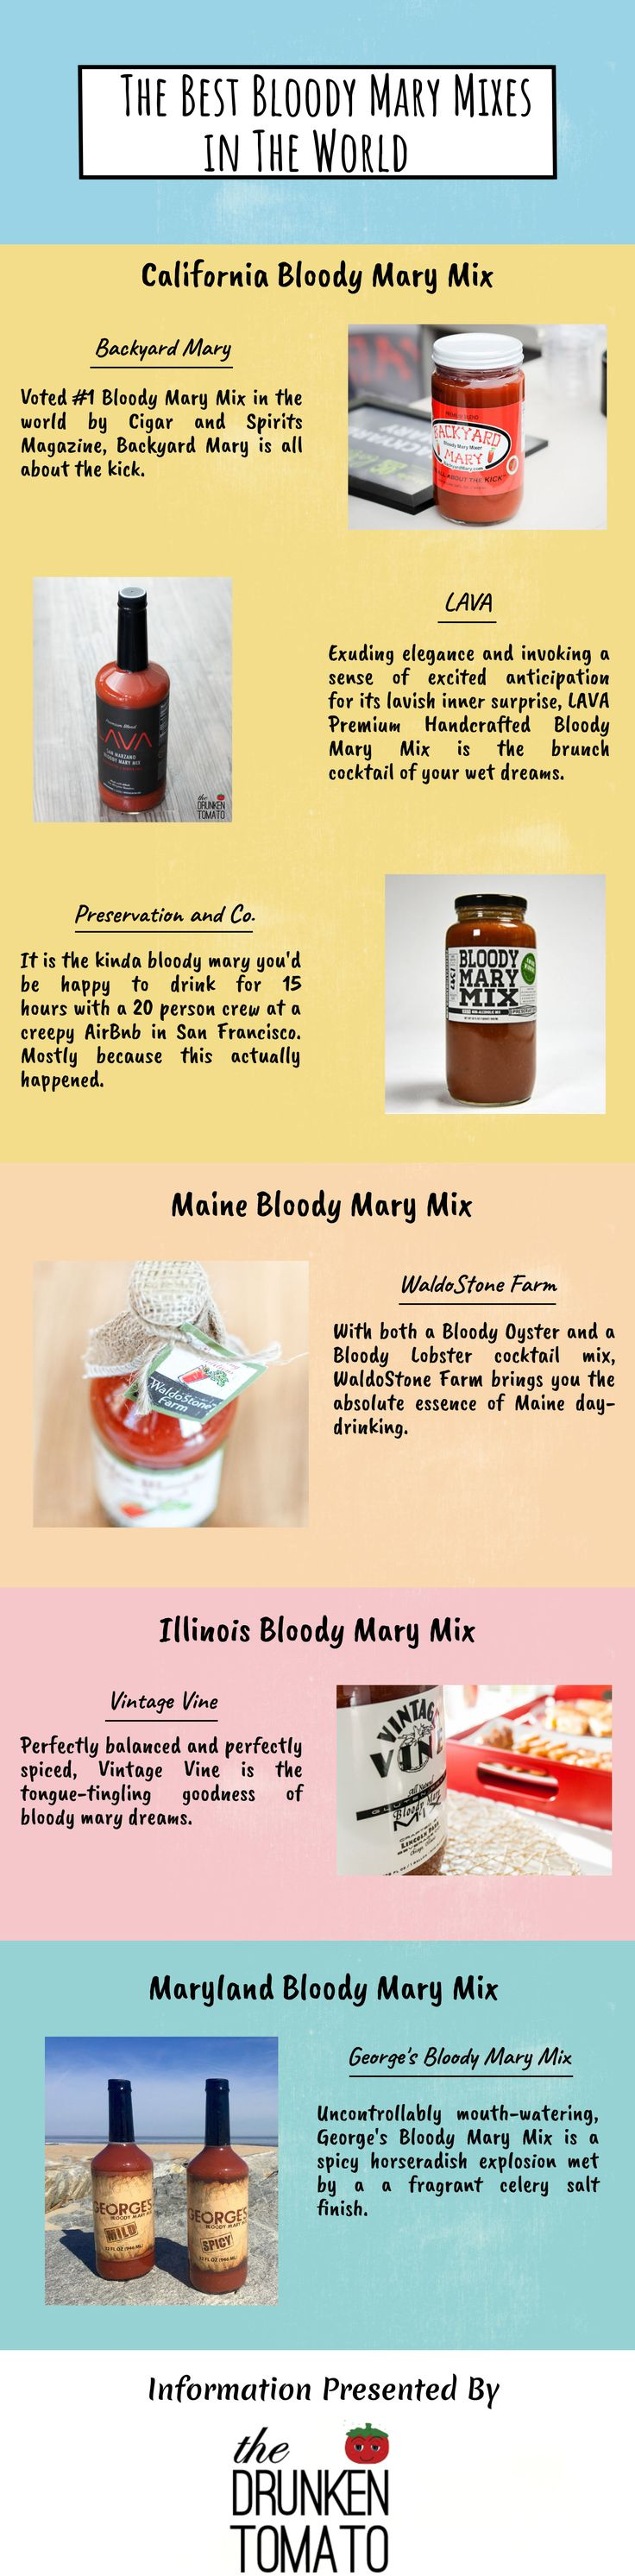 The Best #Bloodymary Mixes in The World